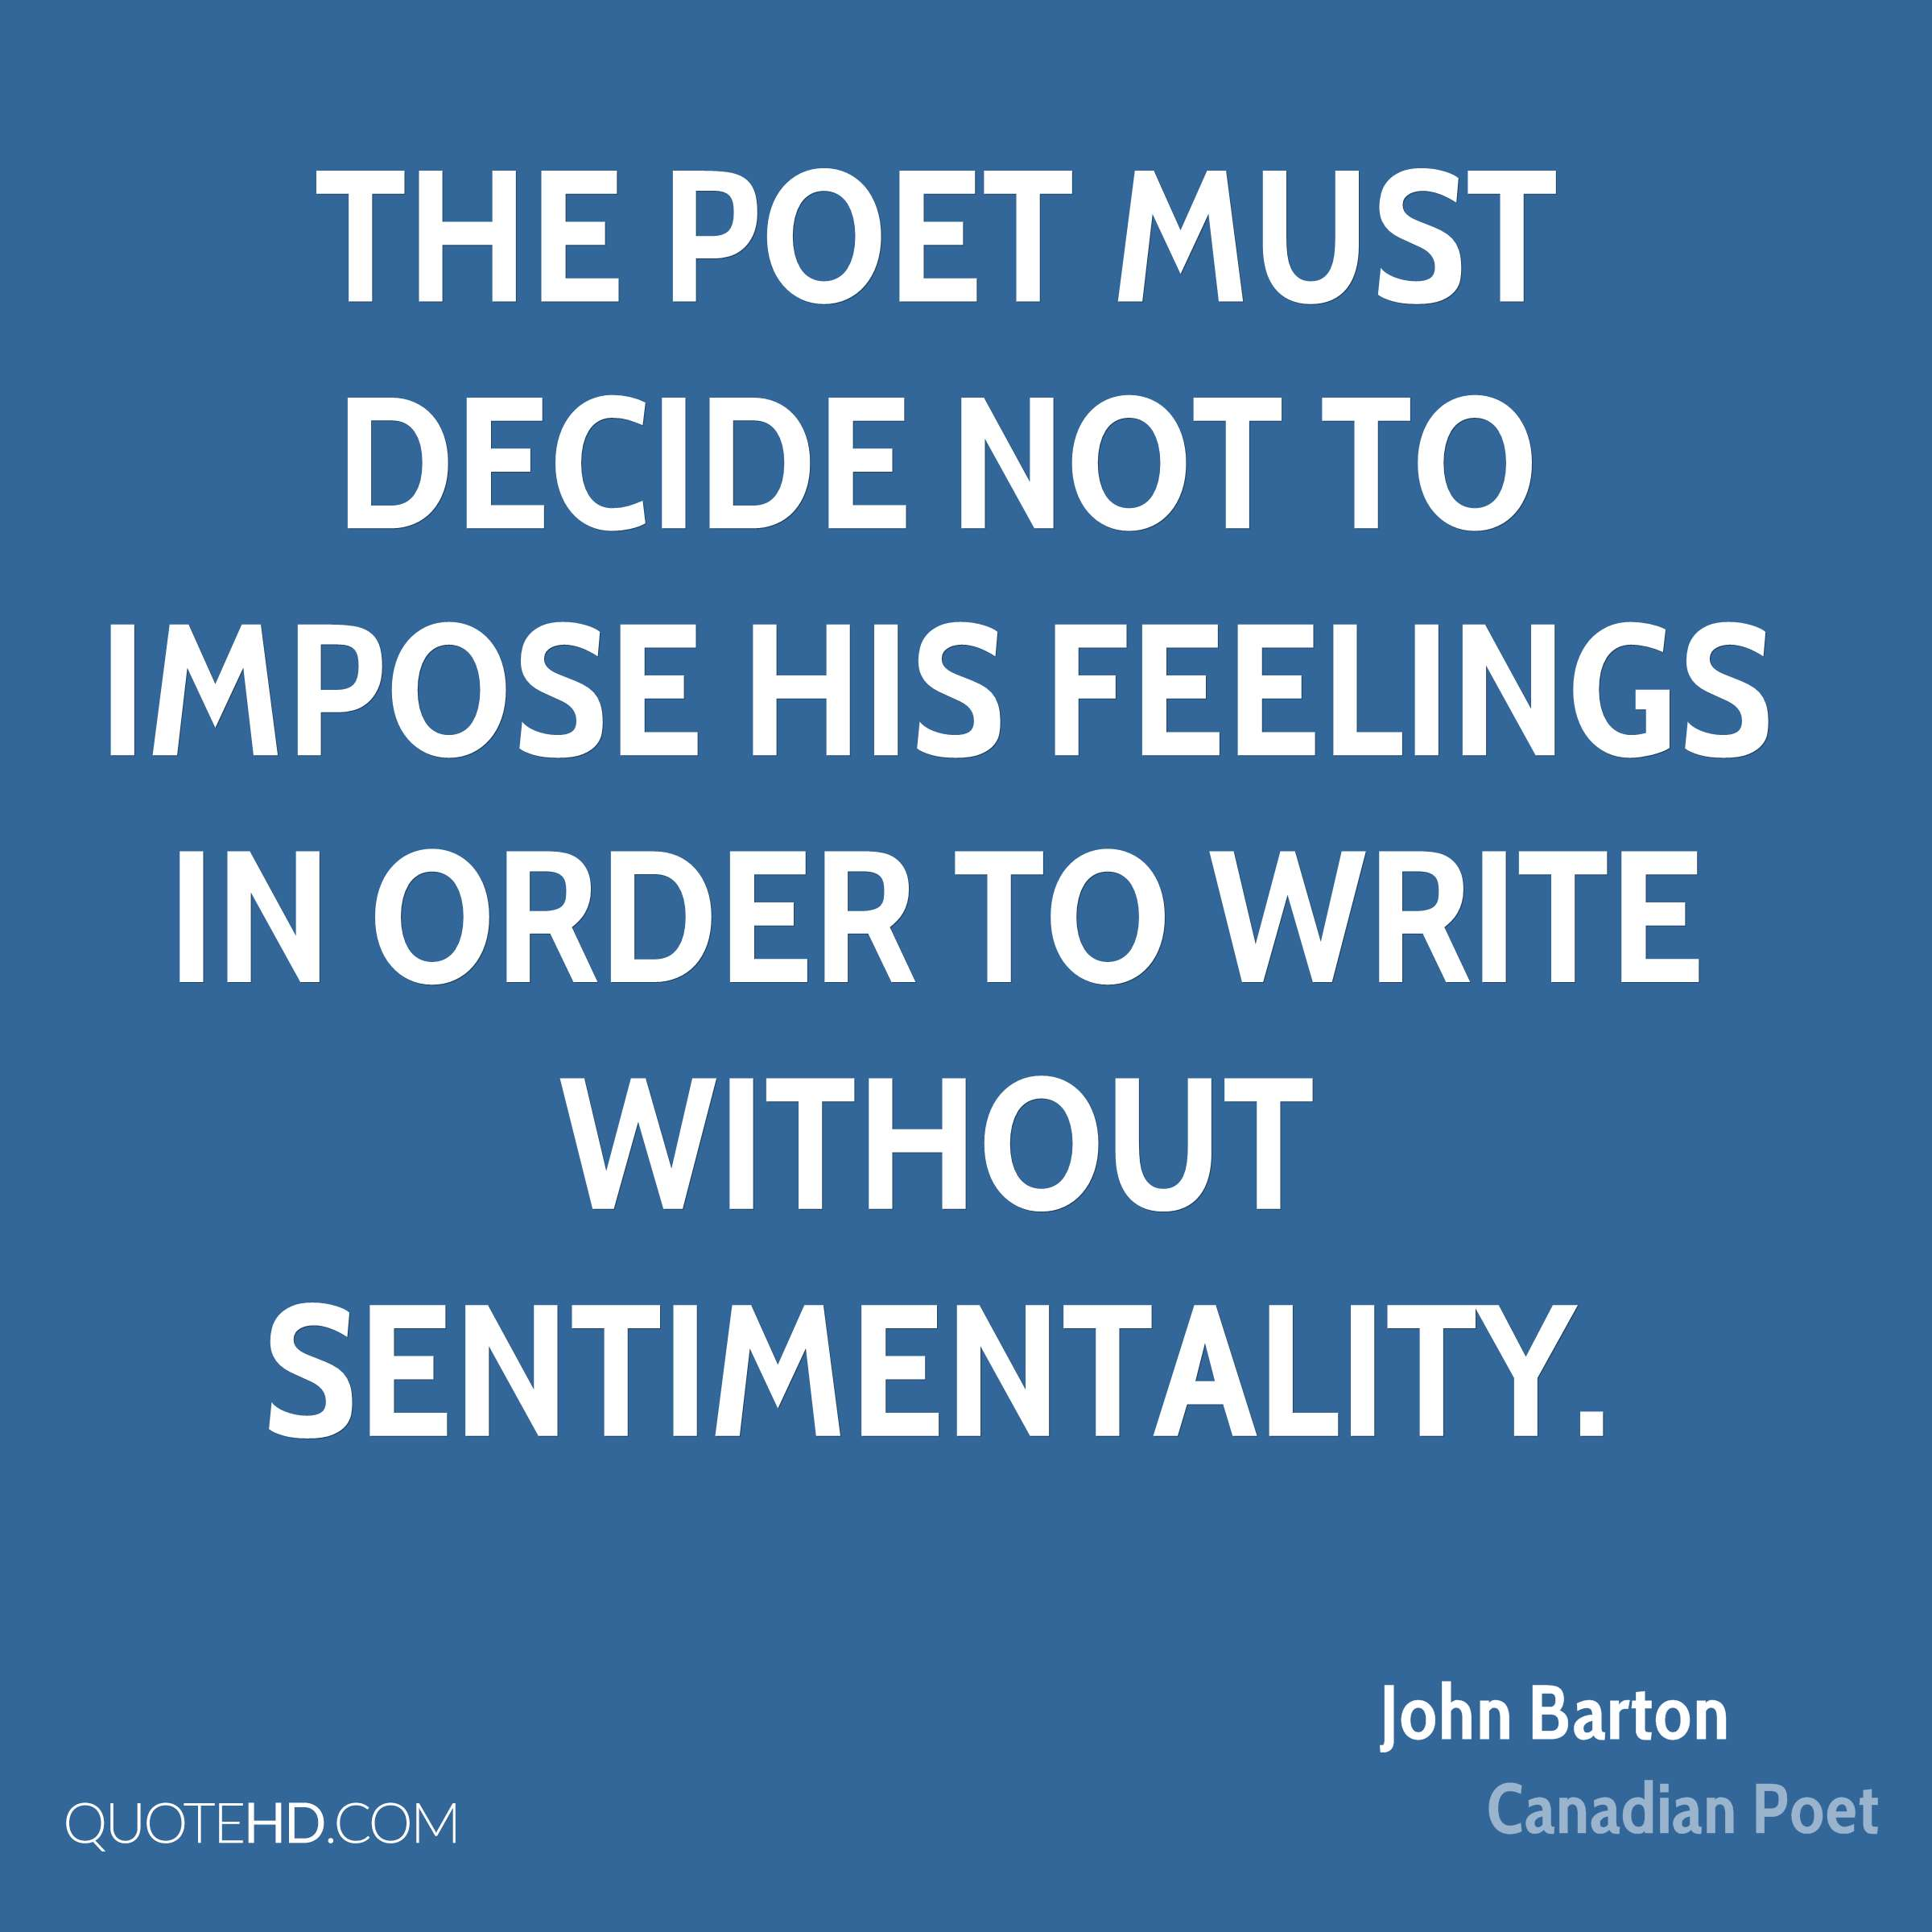 The poet must decide not to impose his feelings in order to write without sentimentality.